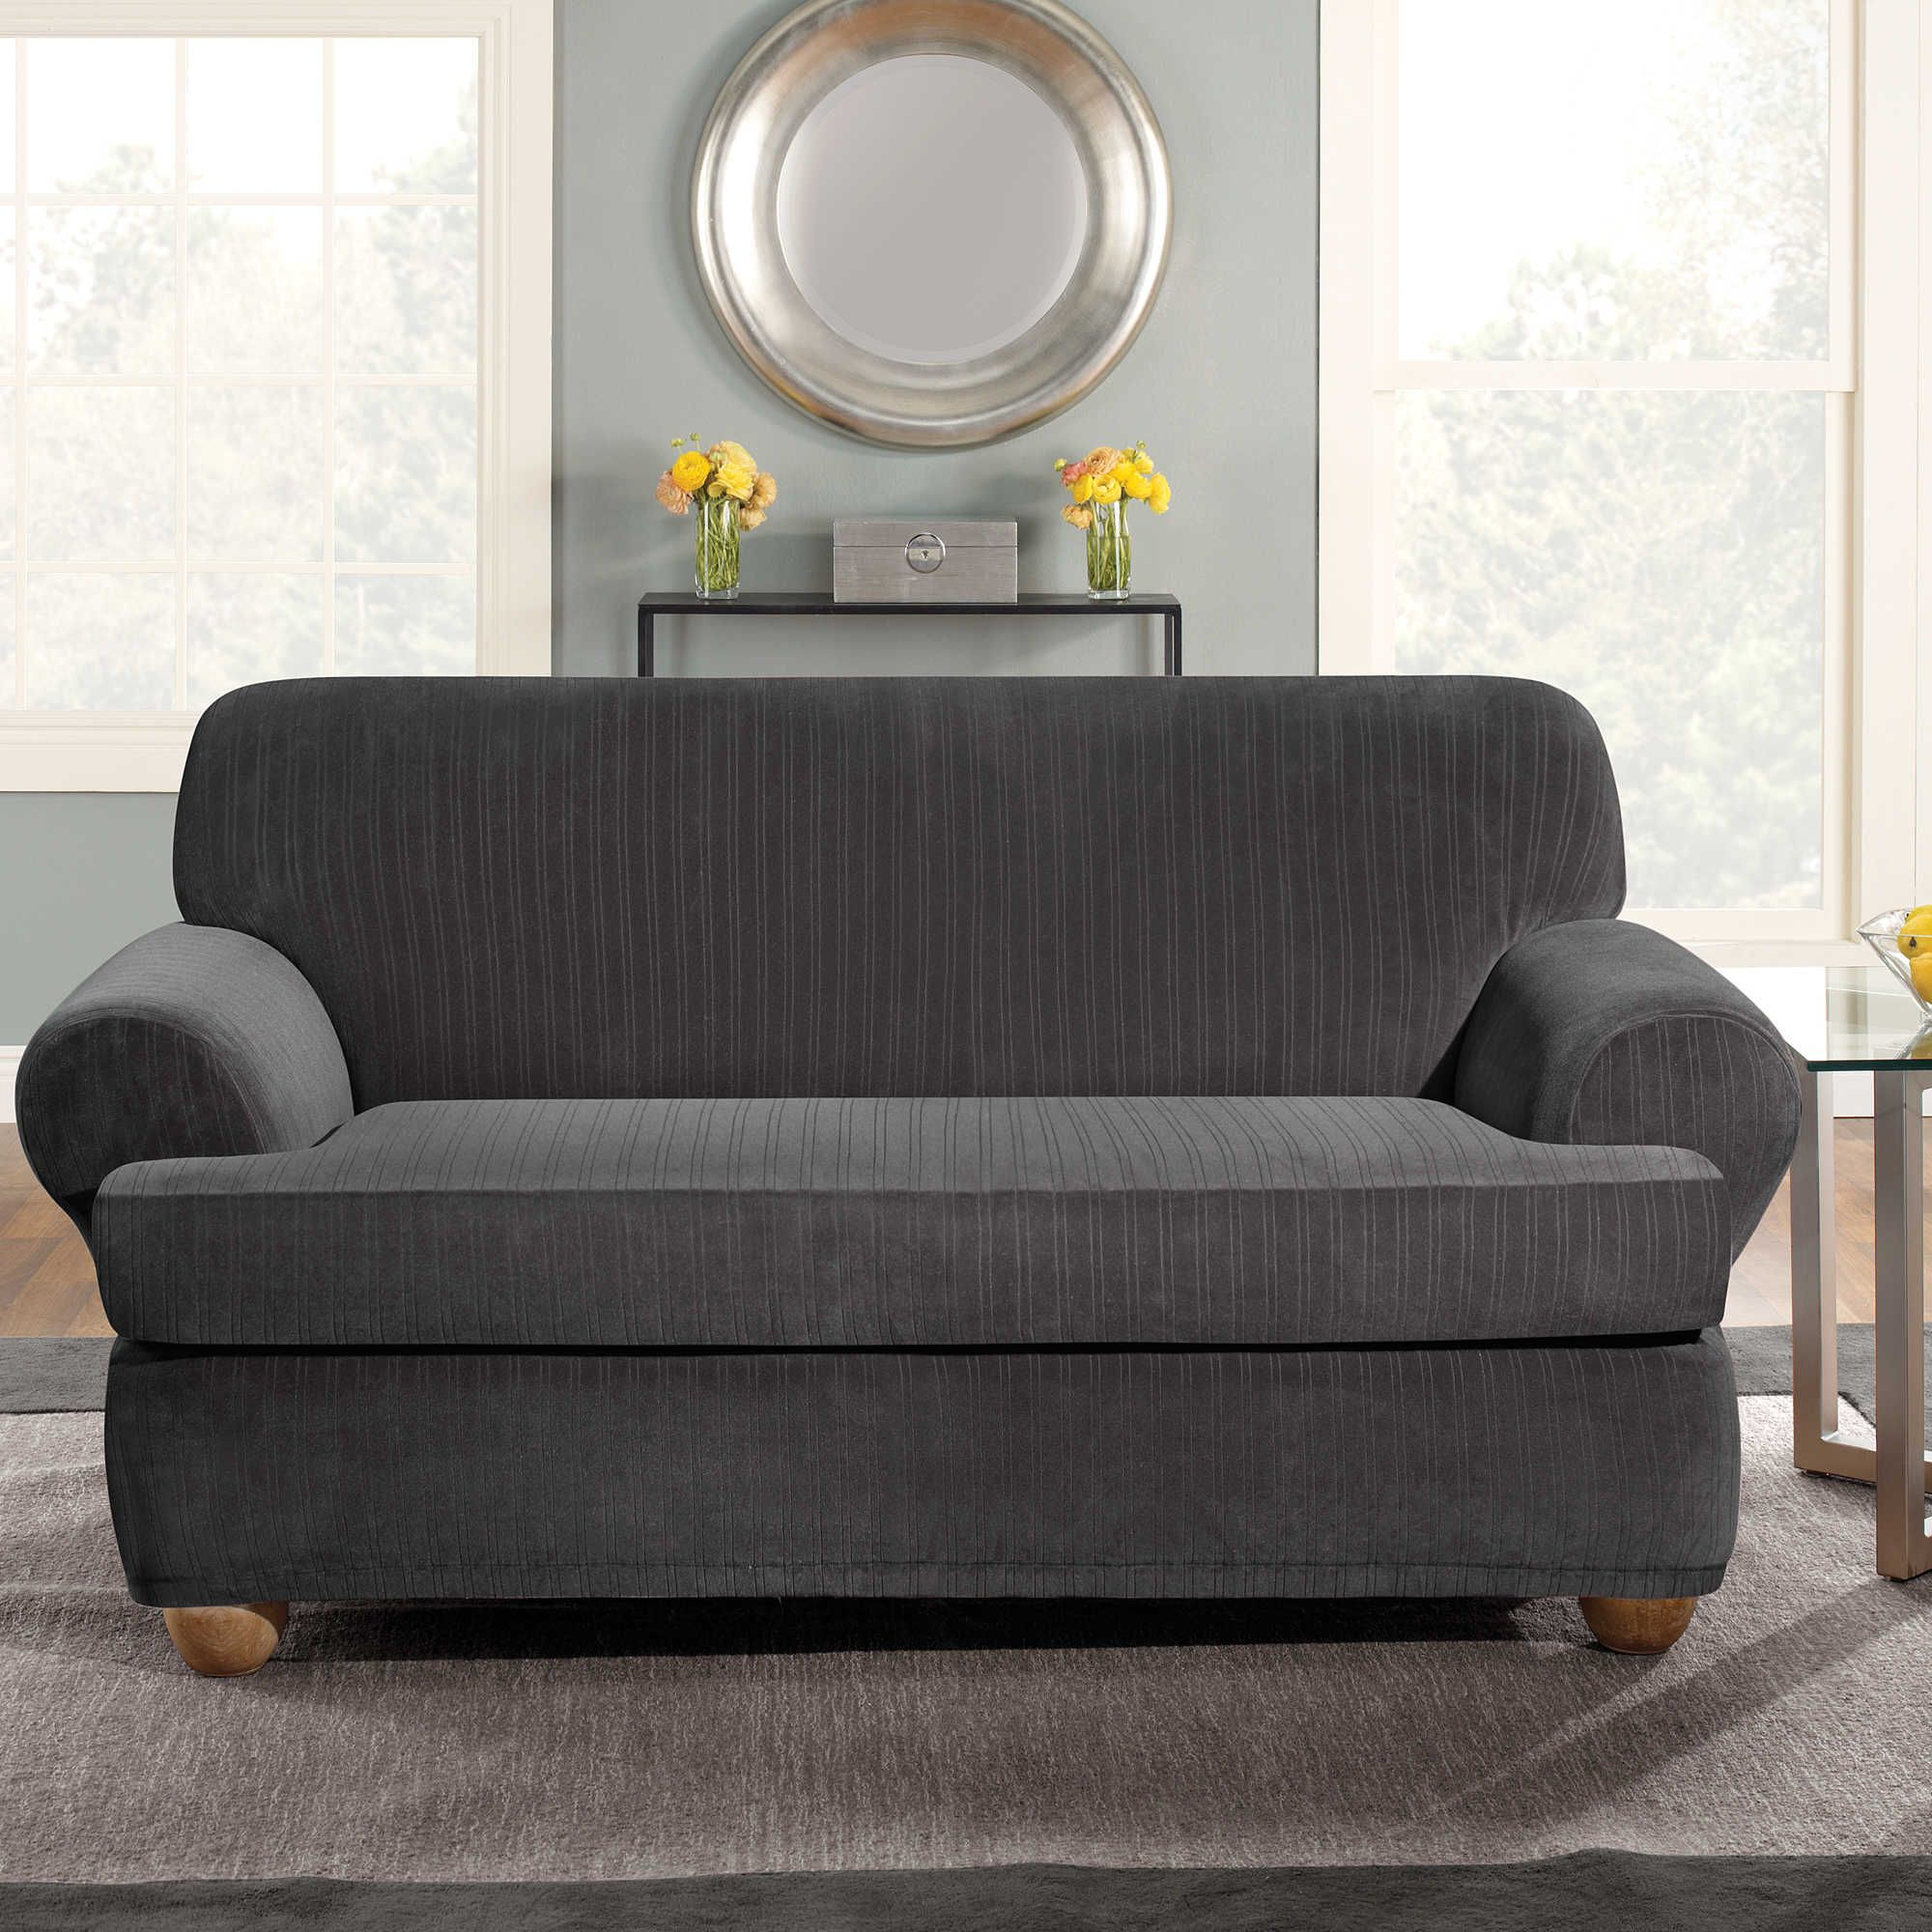 oversized sofa t nice outdoor cushion piece fascinating slipcover loveseat chair slipcovers